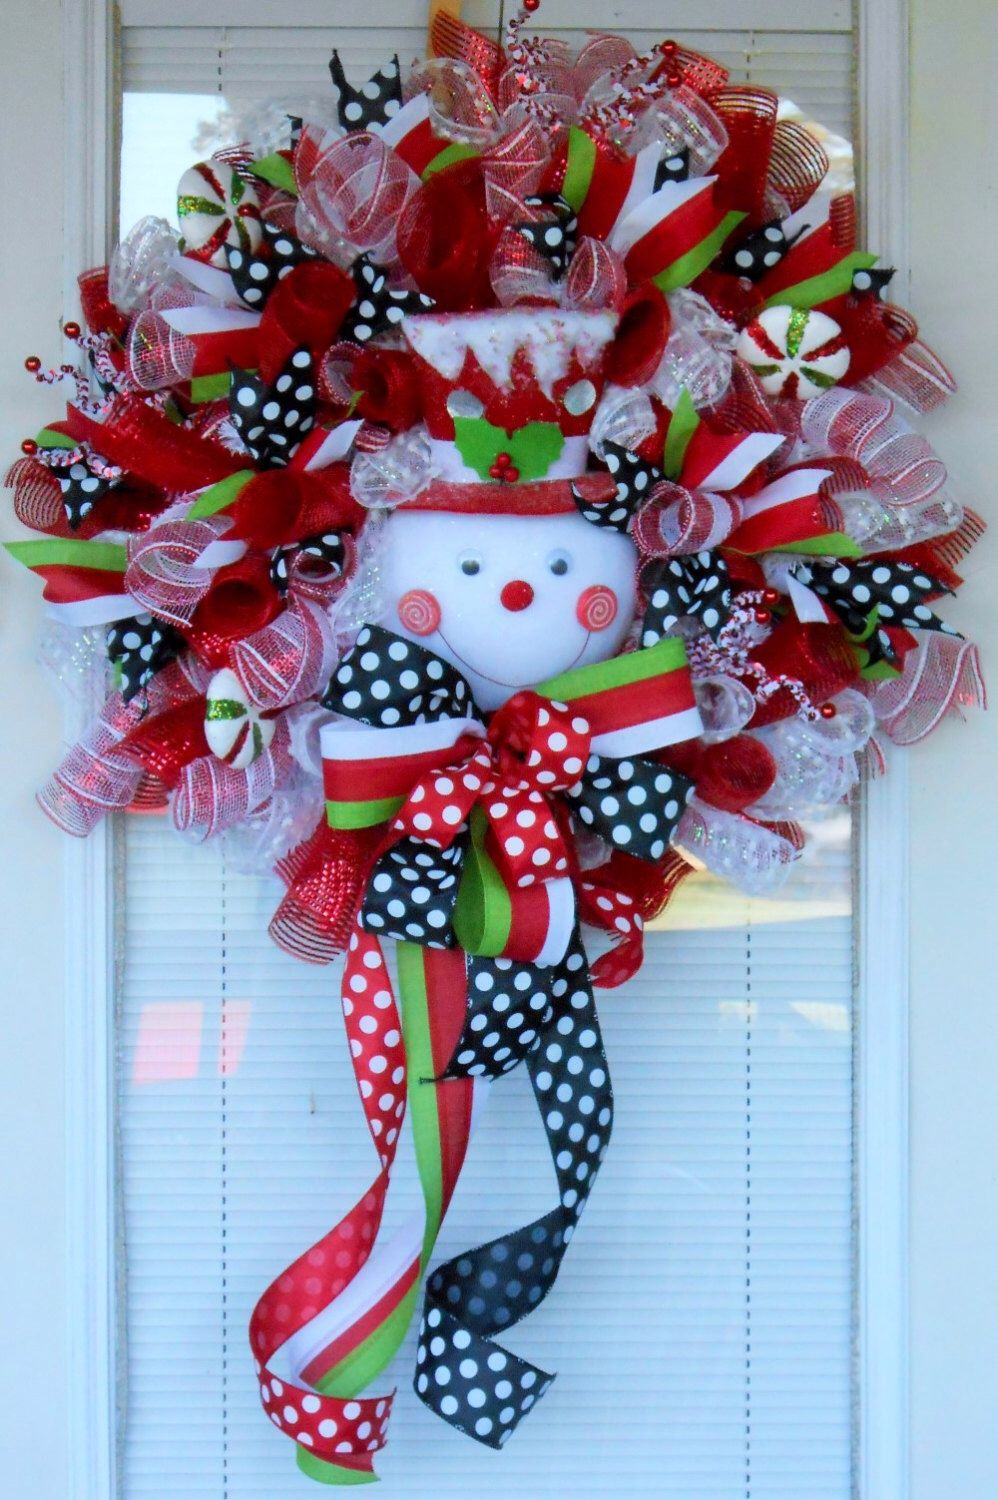 XXL Red and white snowman Christmas deco mesh wreath